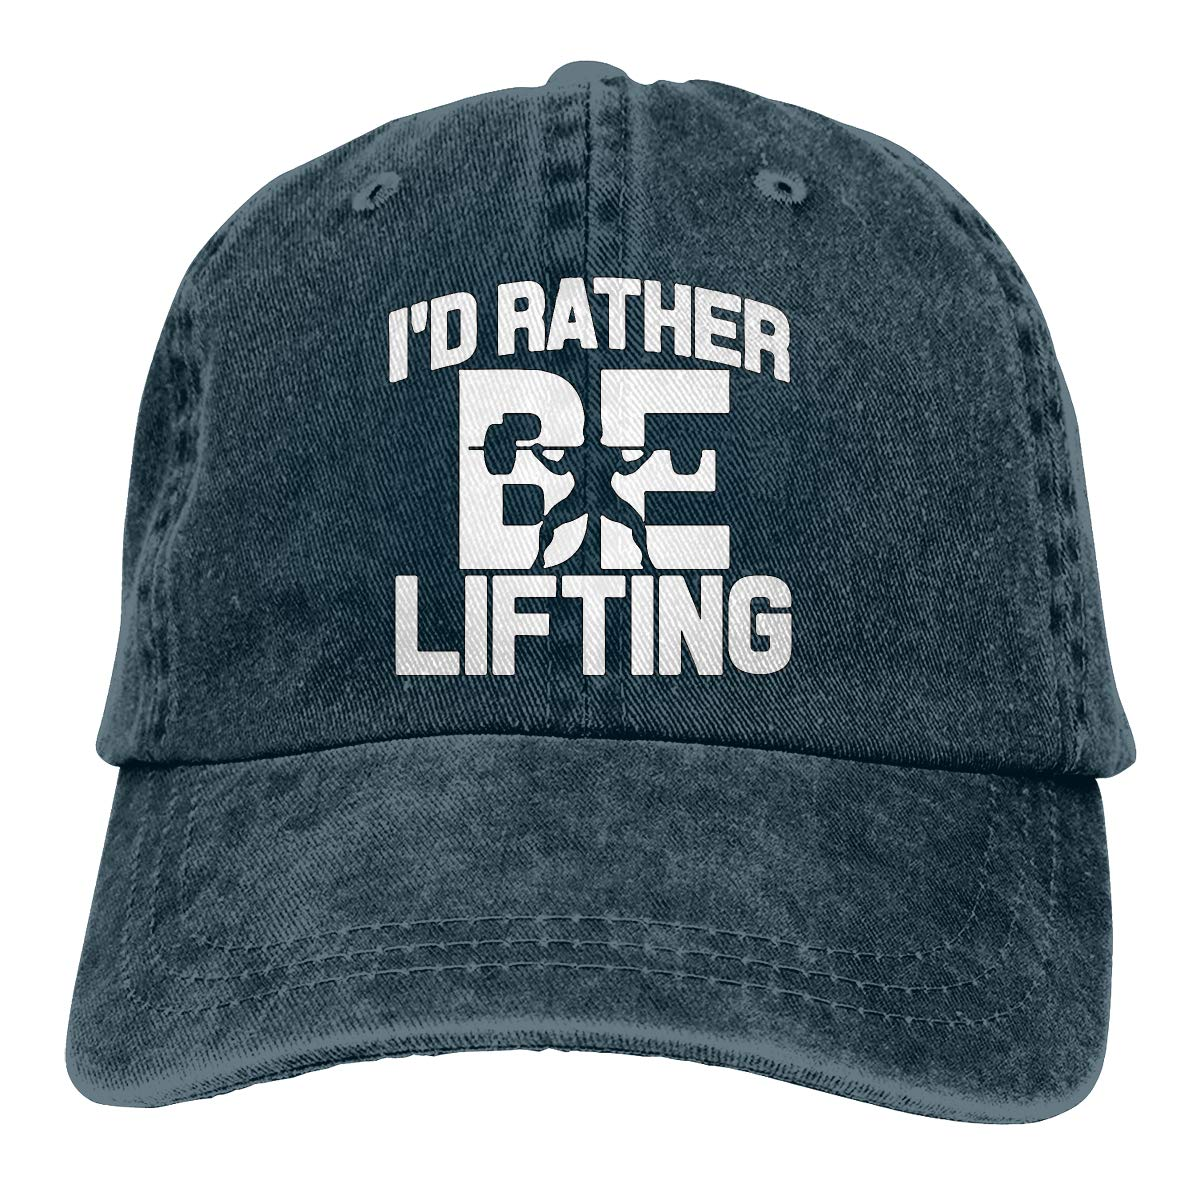 PMGM-C Id Rather Be Lifting Weight Adult Personalize Cowboy Hat Casquette Adjustable Baseball Cap